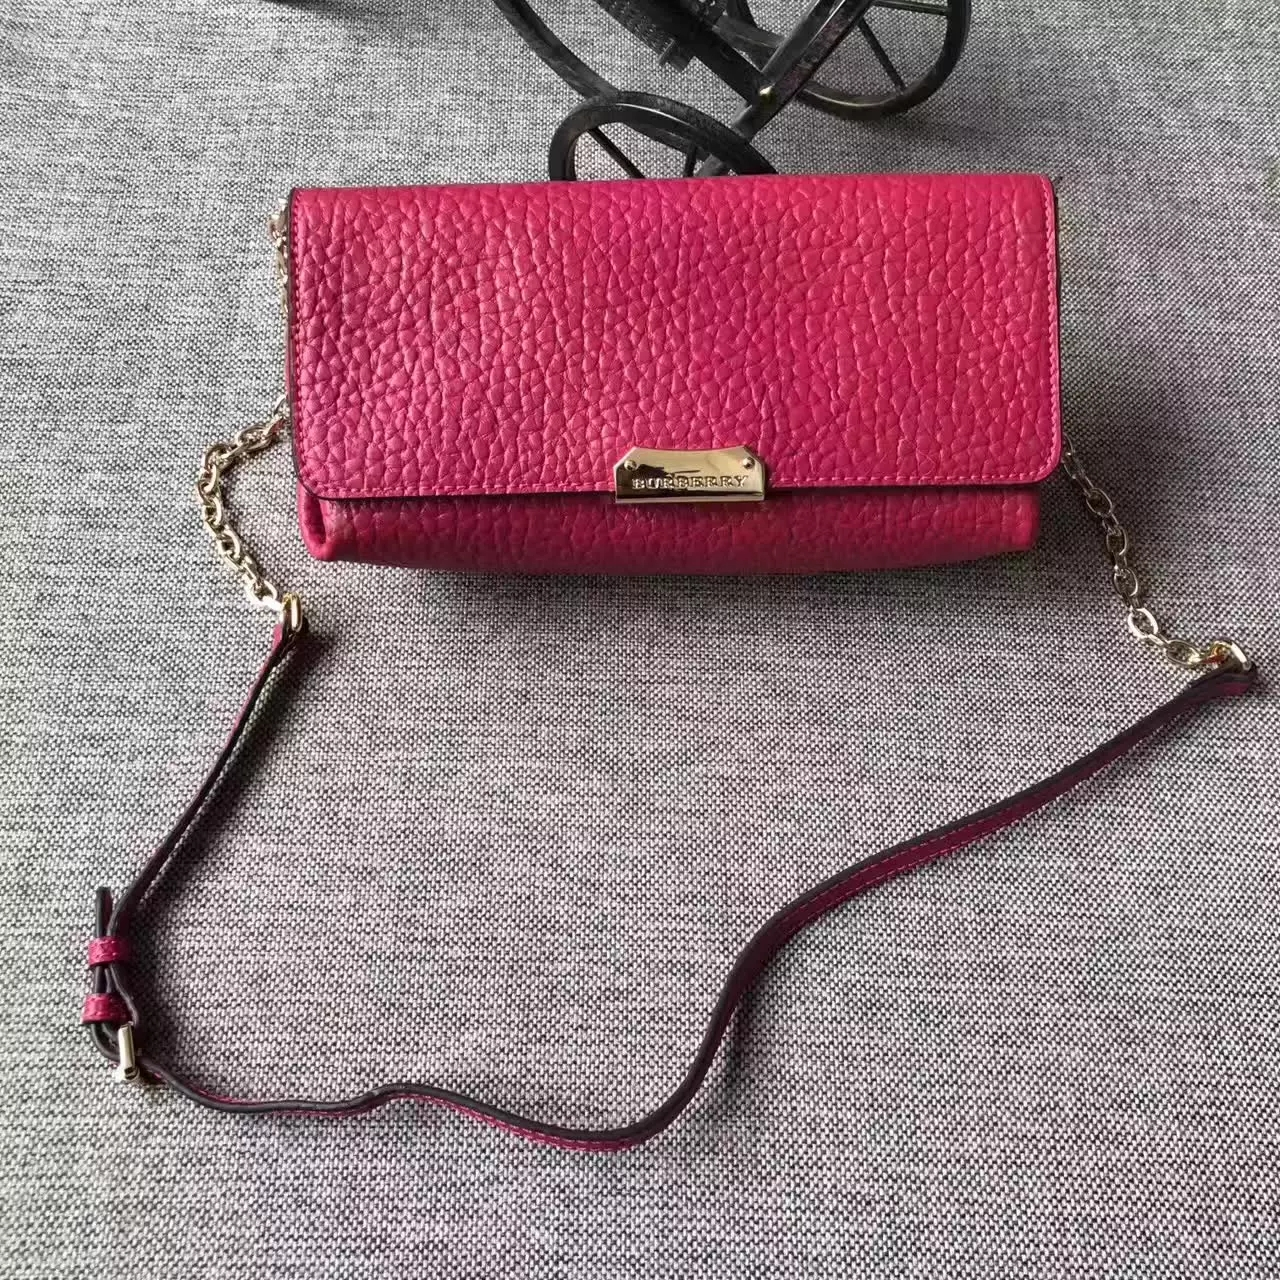 Original Burberry Signature Grain Leather Mini Crossbody Clutch Bags Pink